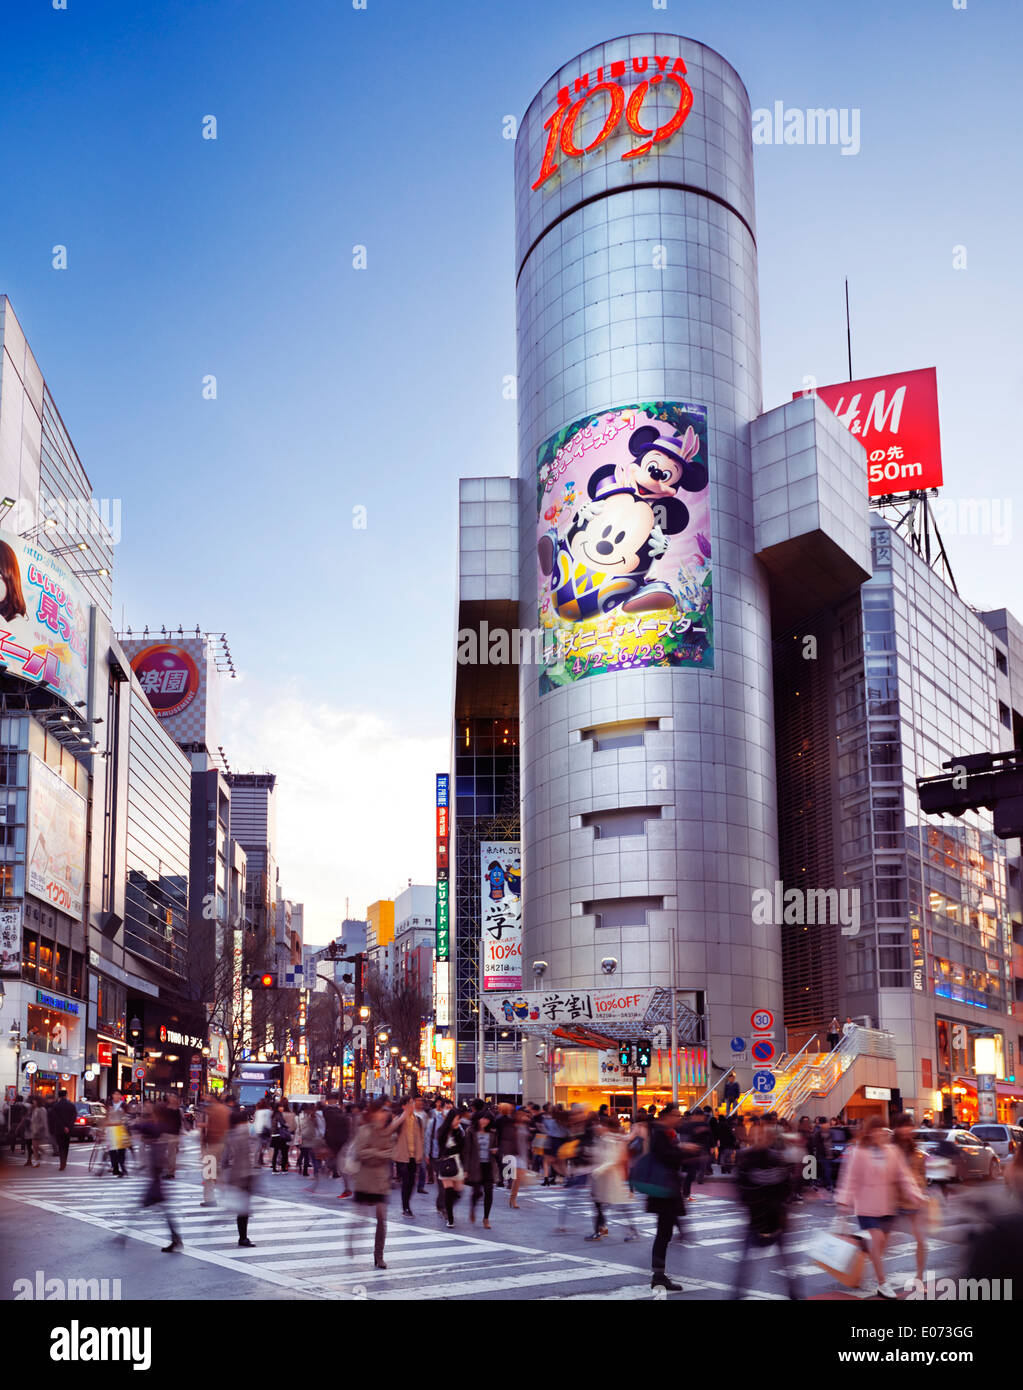 People crossing the street in front of Shibuya 109 store in Tokyo, Japan - Stock Image